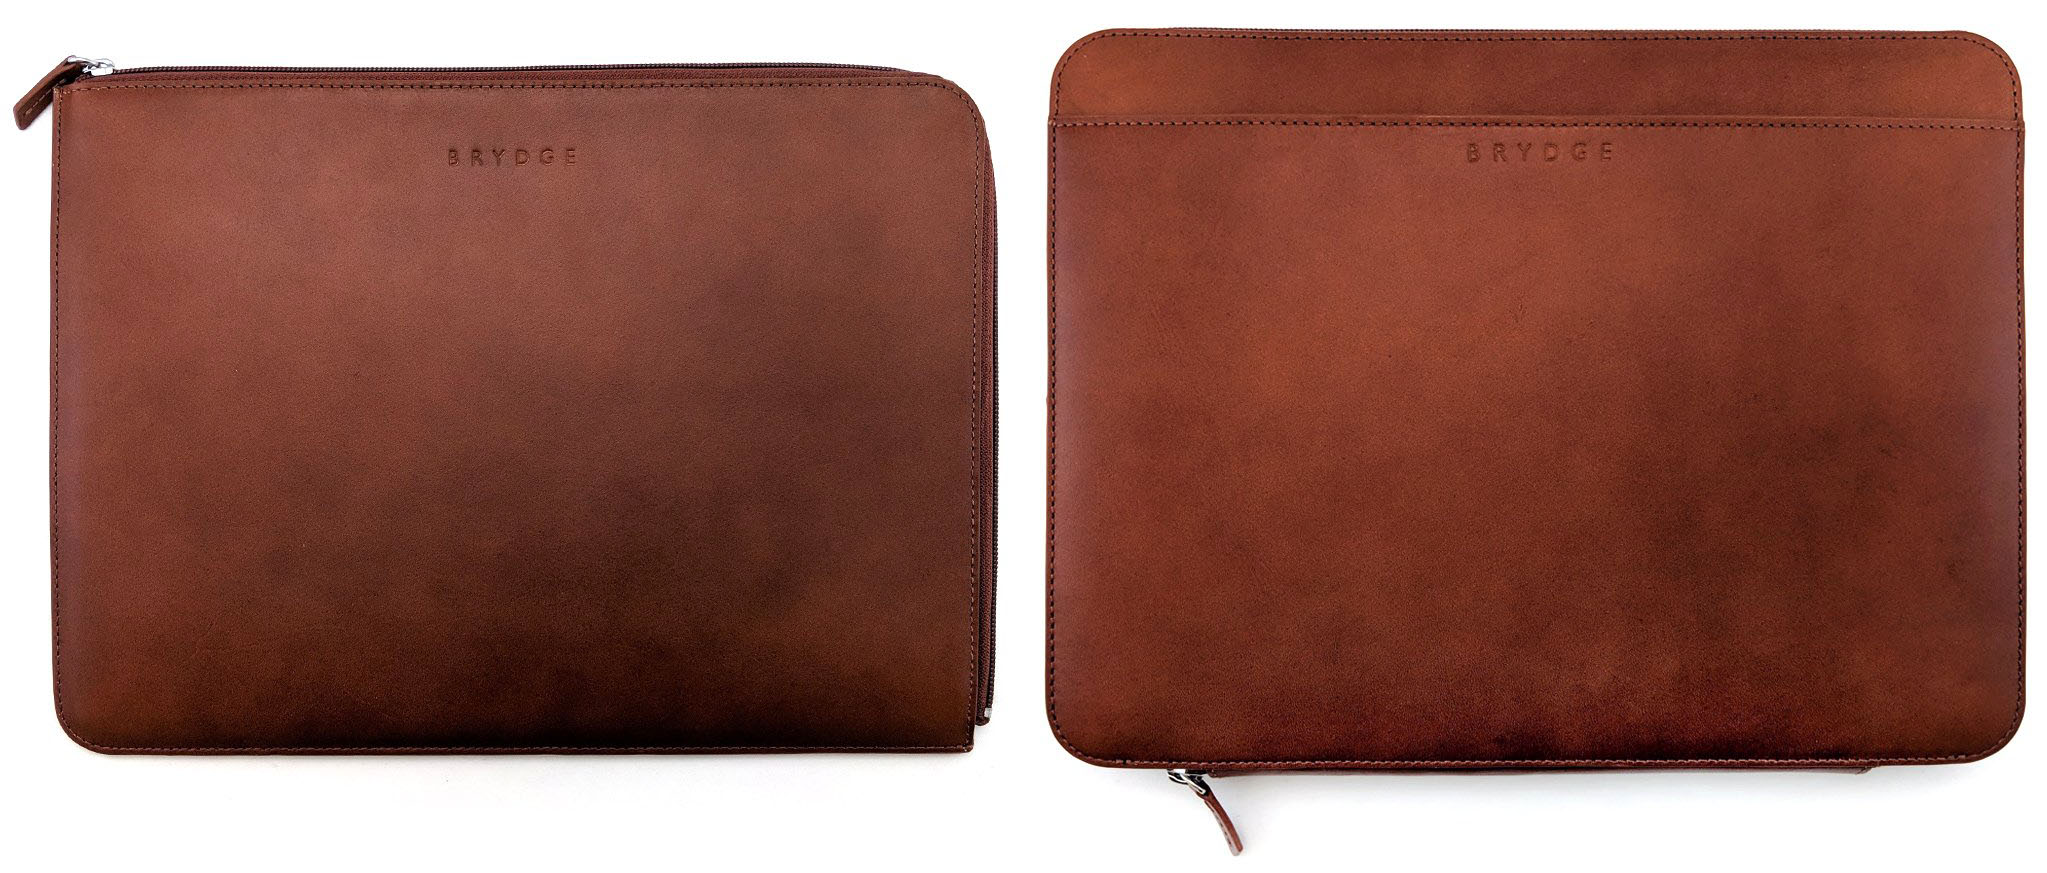 Brydge leather iPad cases